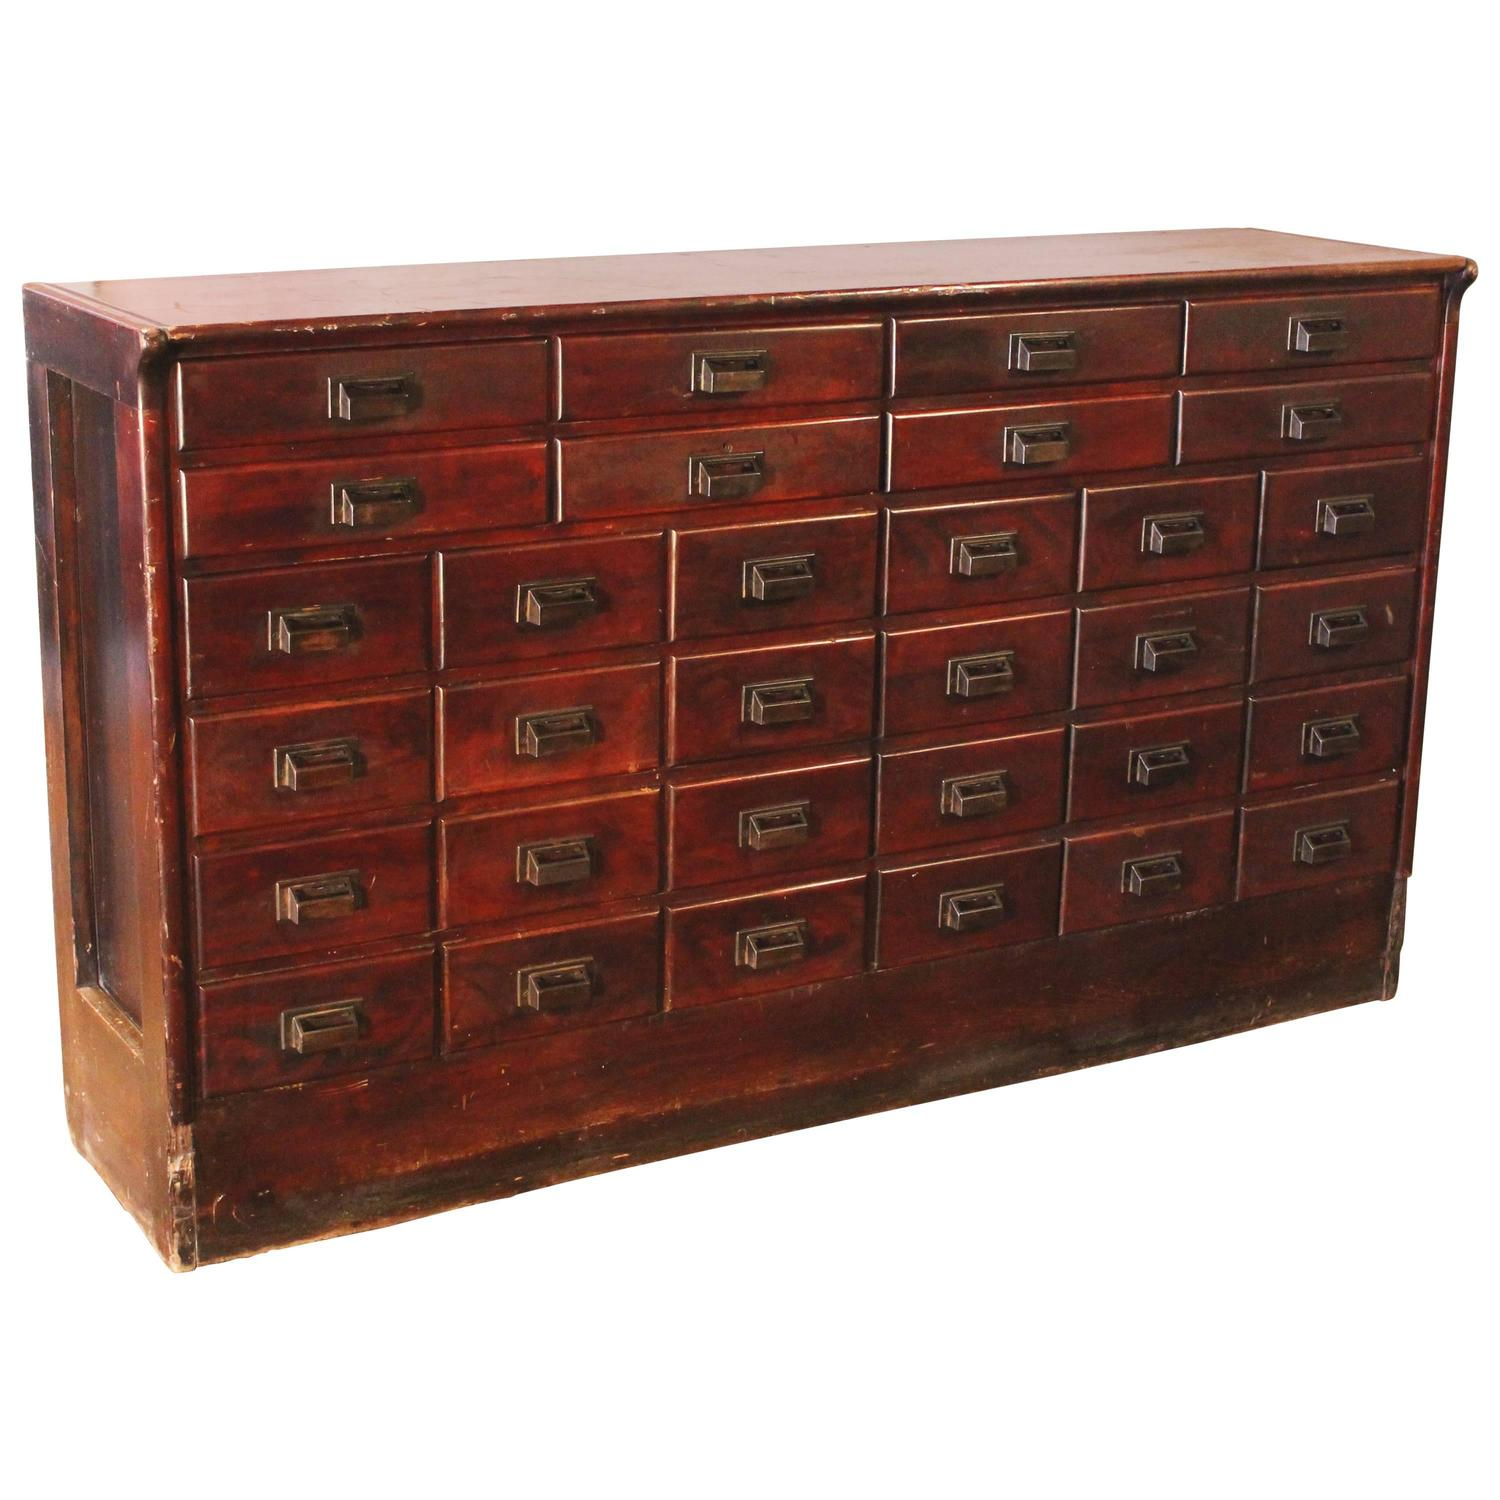 Apothecary Cabinet Vintage Industrial Wood Hardware Multi Drawer Storage  Counter - Antique Apothecary Cabinets For Sale In USA - 1stdibs